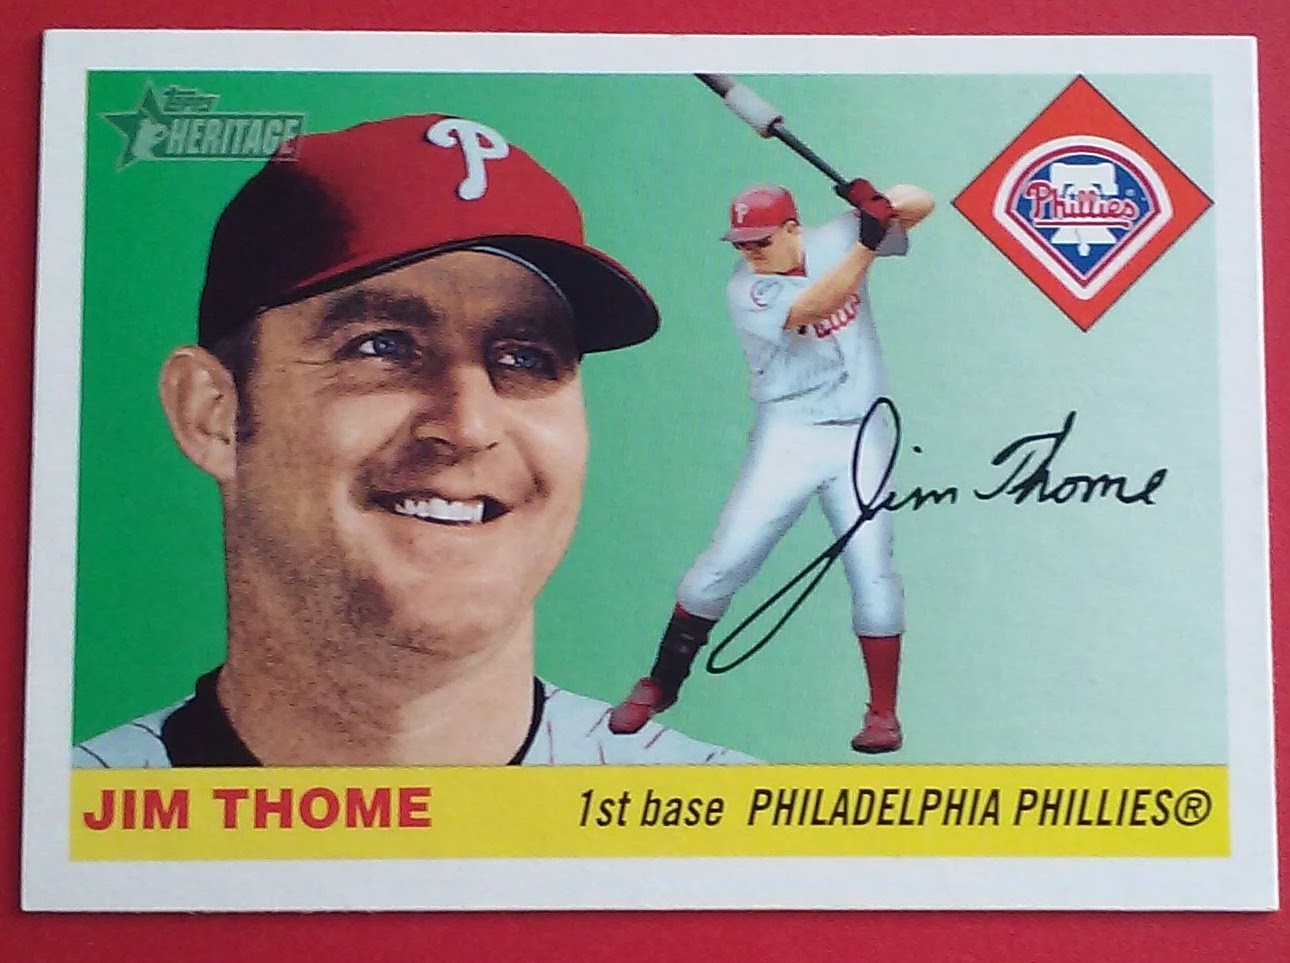 Phungo Topps 1 Club 2004 Heritage Jim Thome And A Short